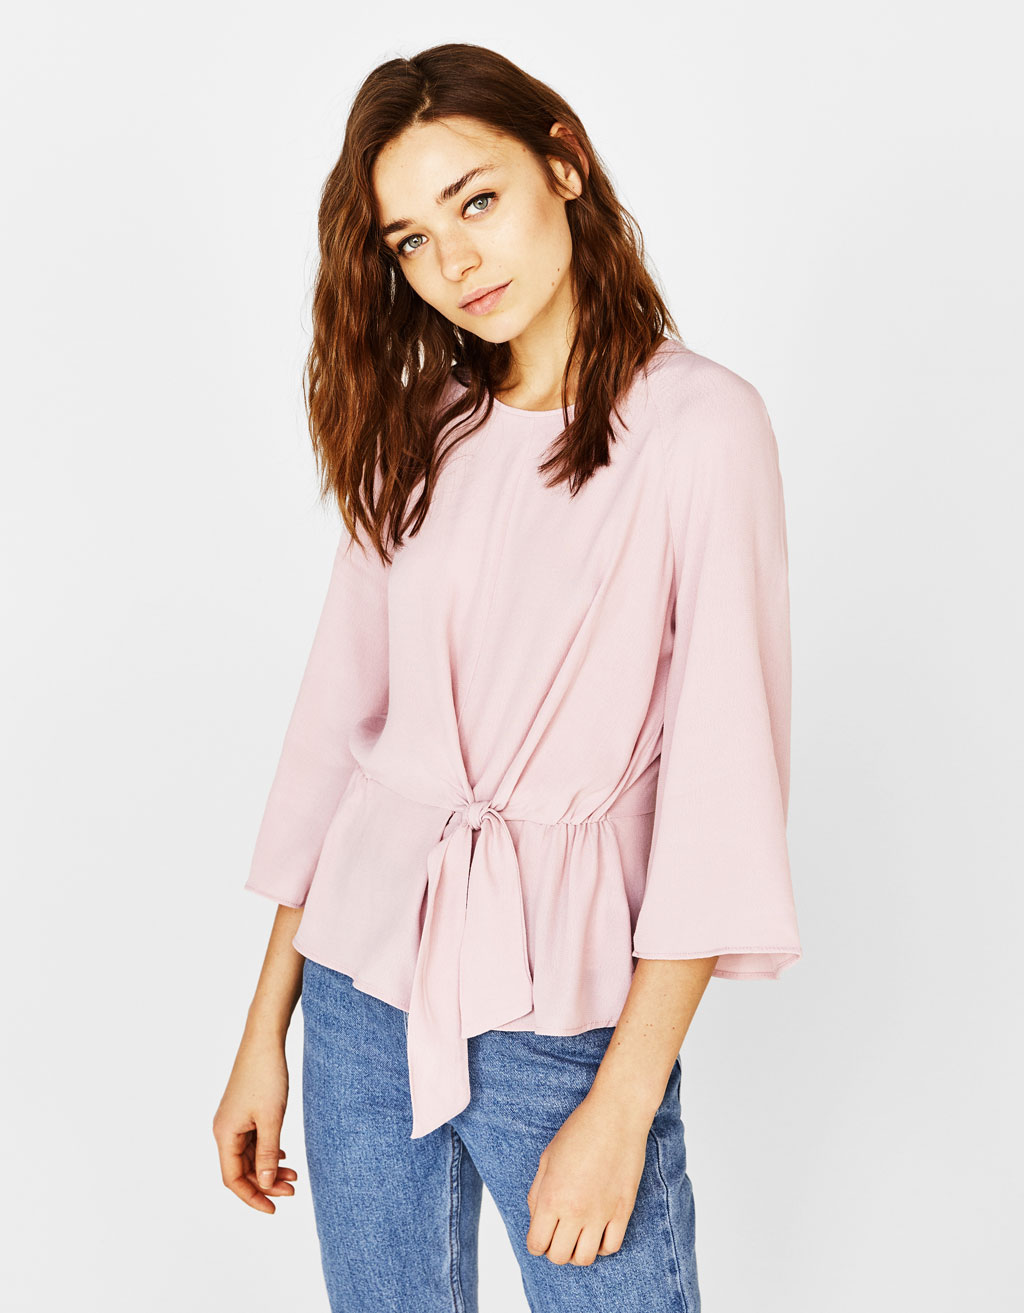 Blouse with knot detail